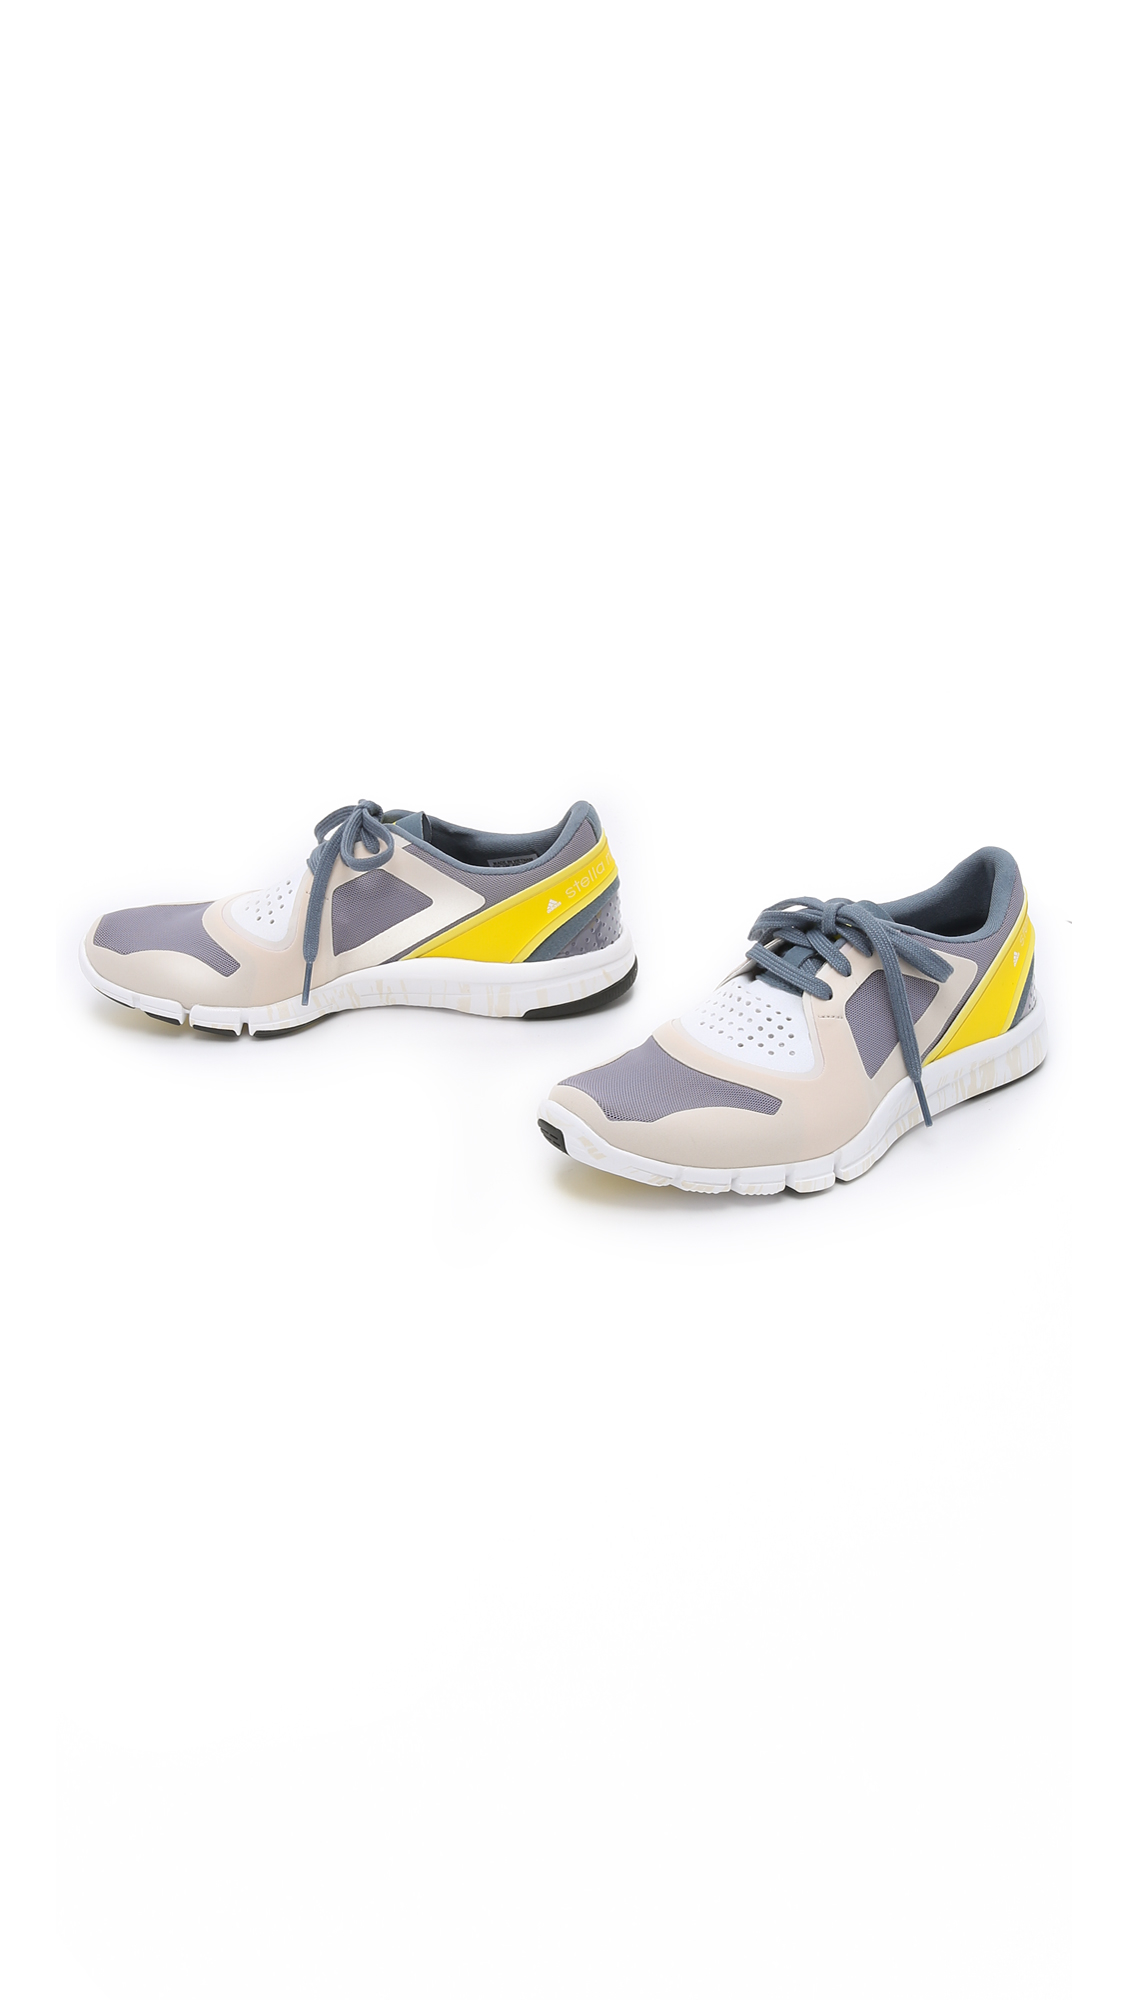 adidas by stella mccartney alayta sneakers antique white blue grey yellow in multicolor. Black Bedroom Furniture Sets. Home Design Ideas